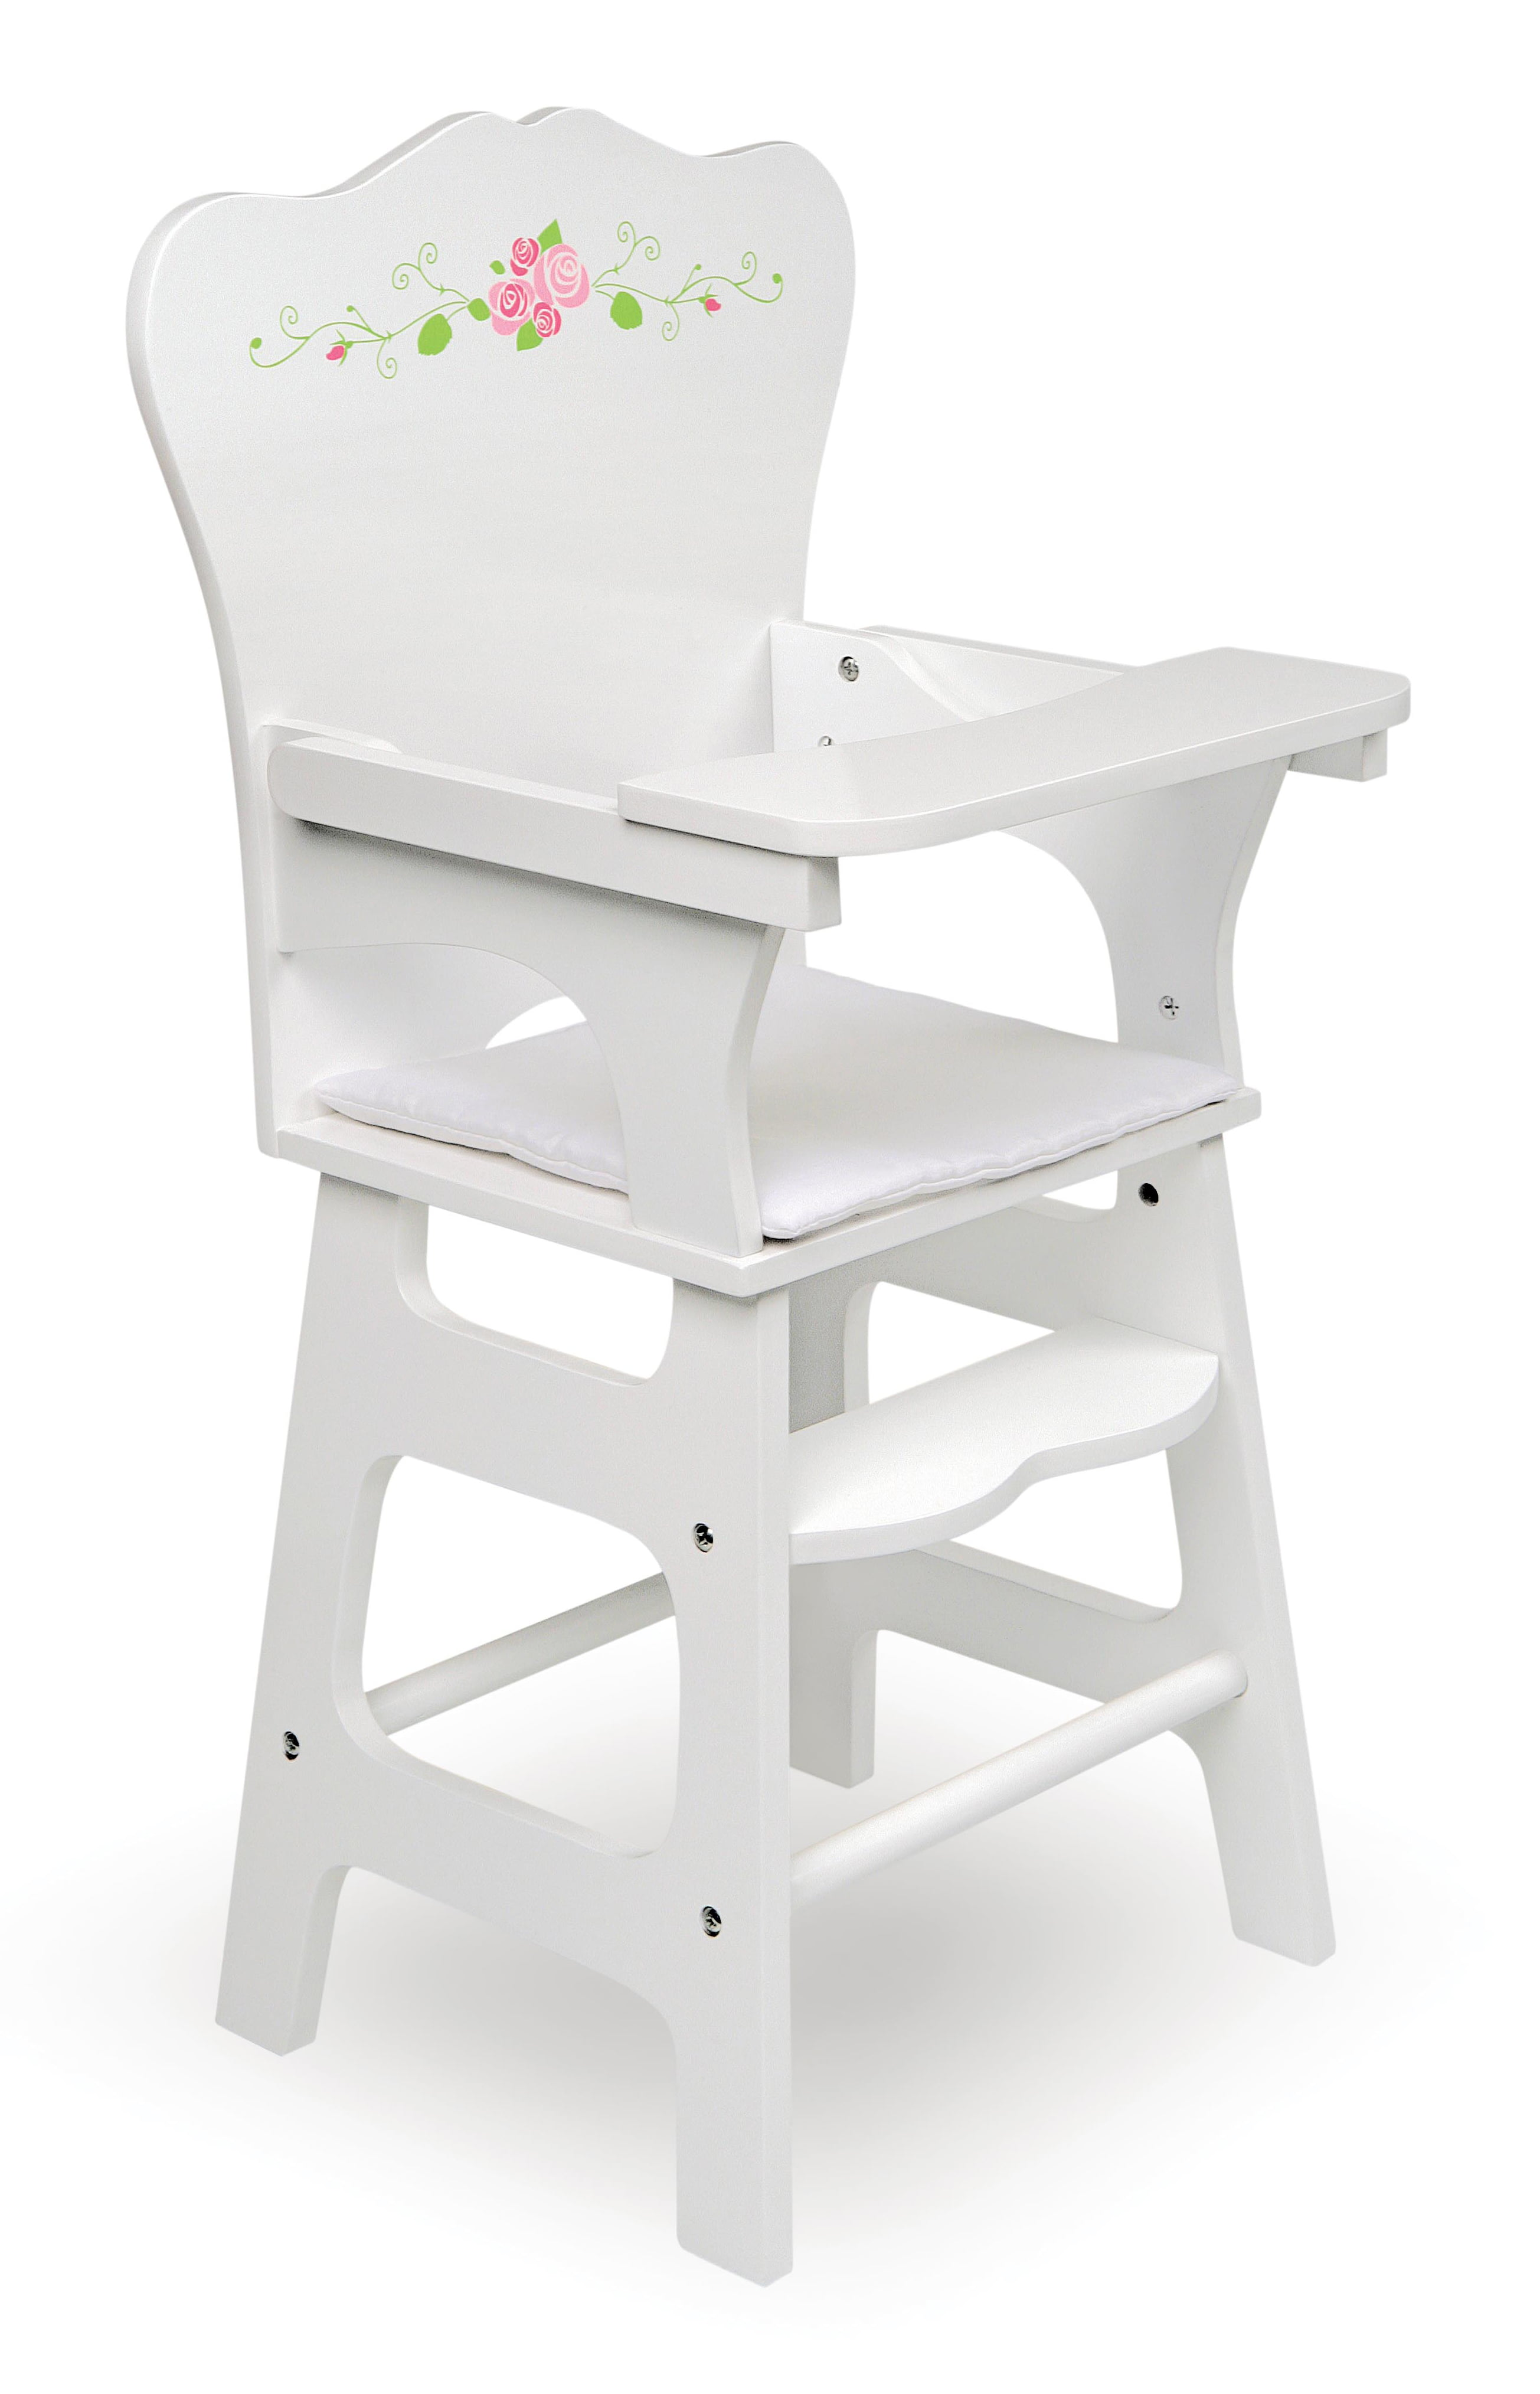 Badger Basket Doll High Chair with Padded Seat White Rose Fits American Girl, My Life As &... by Badger Basket